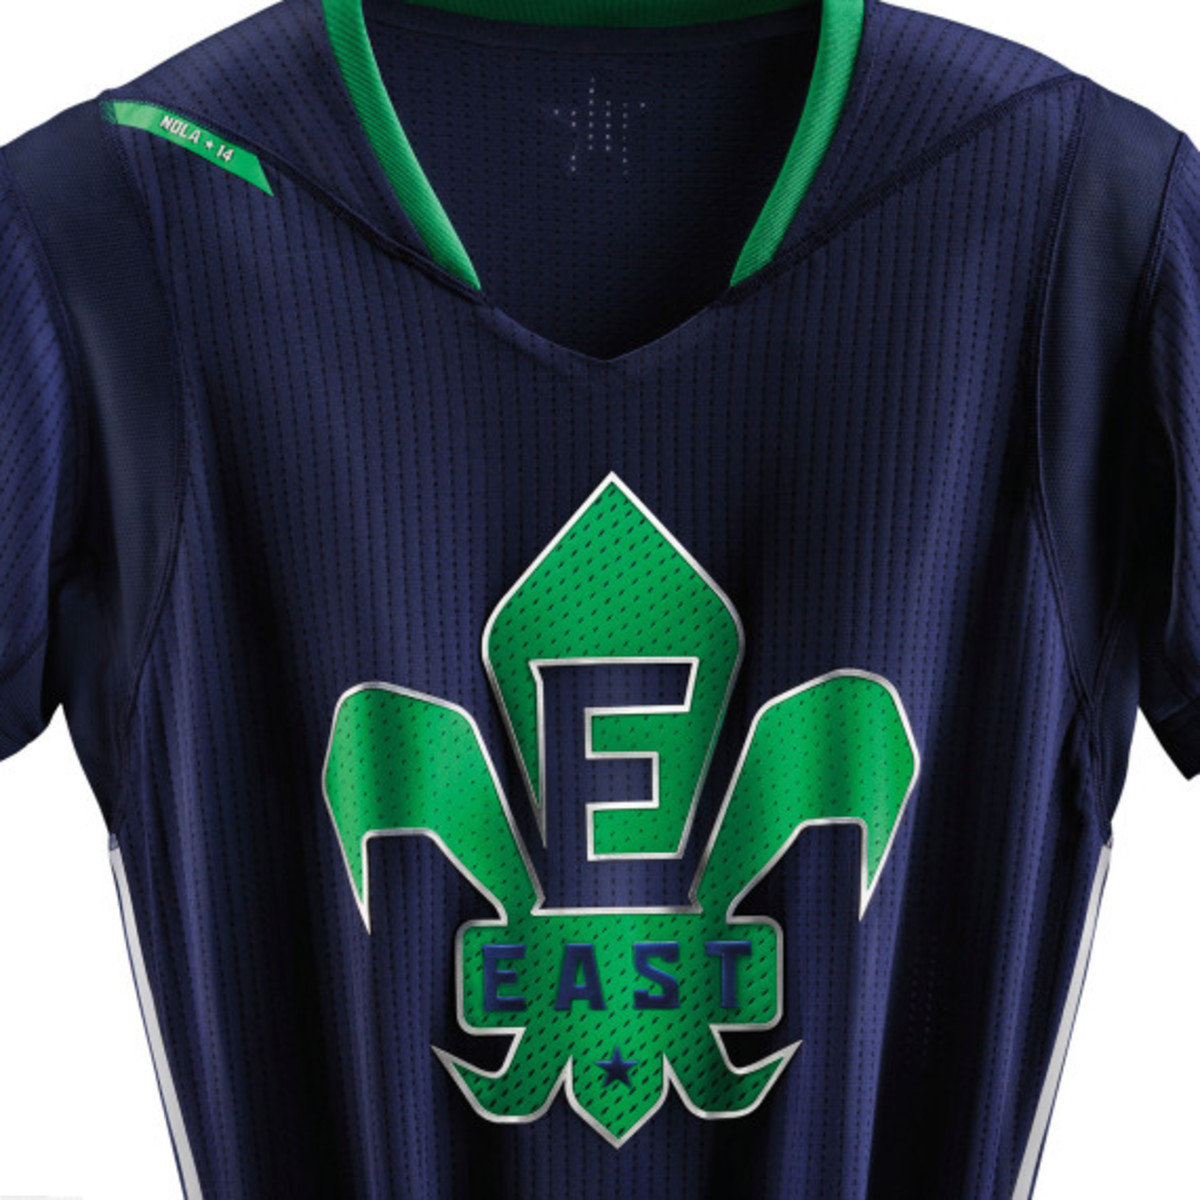 adidas-nba-2014-nba-all-star-game-uniforms-revealed-08